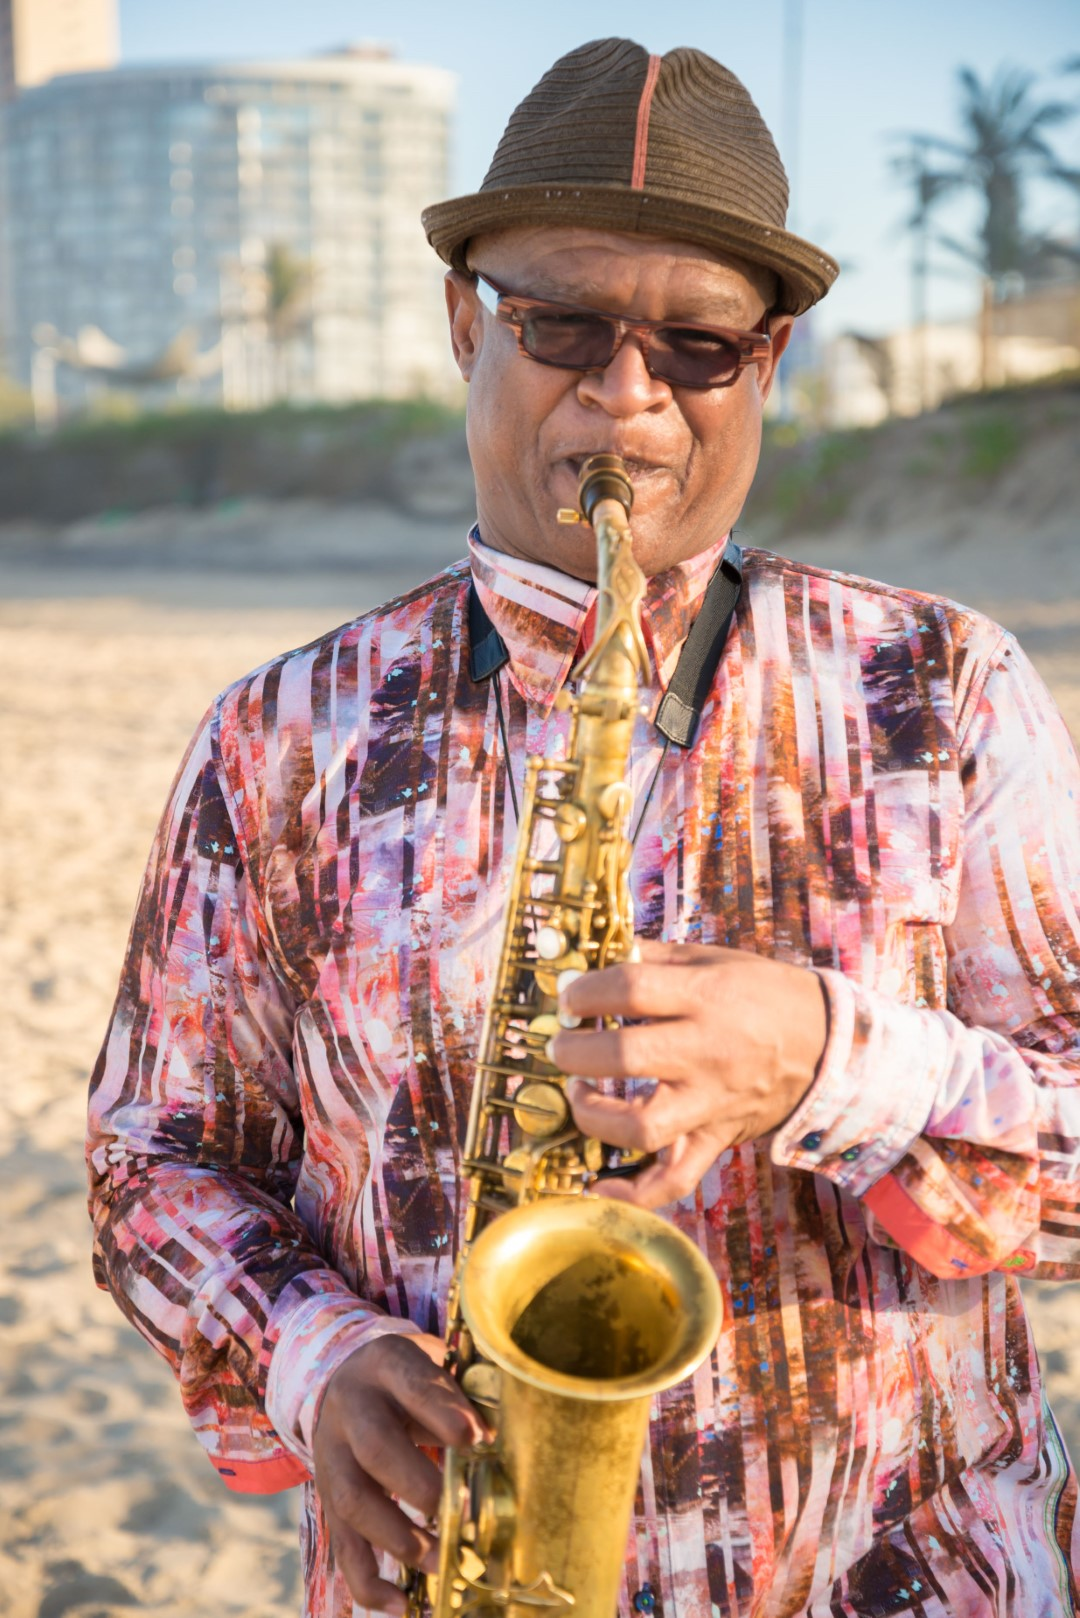 Saxophonist Ernest Dawkins of the United States.